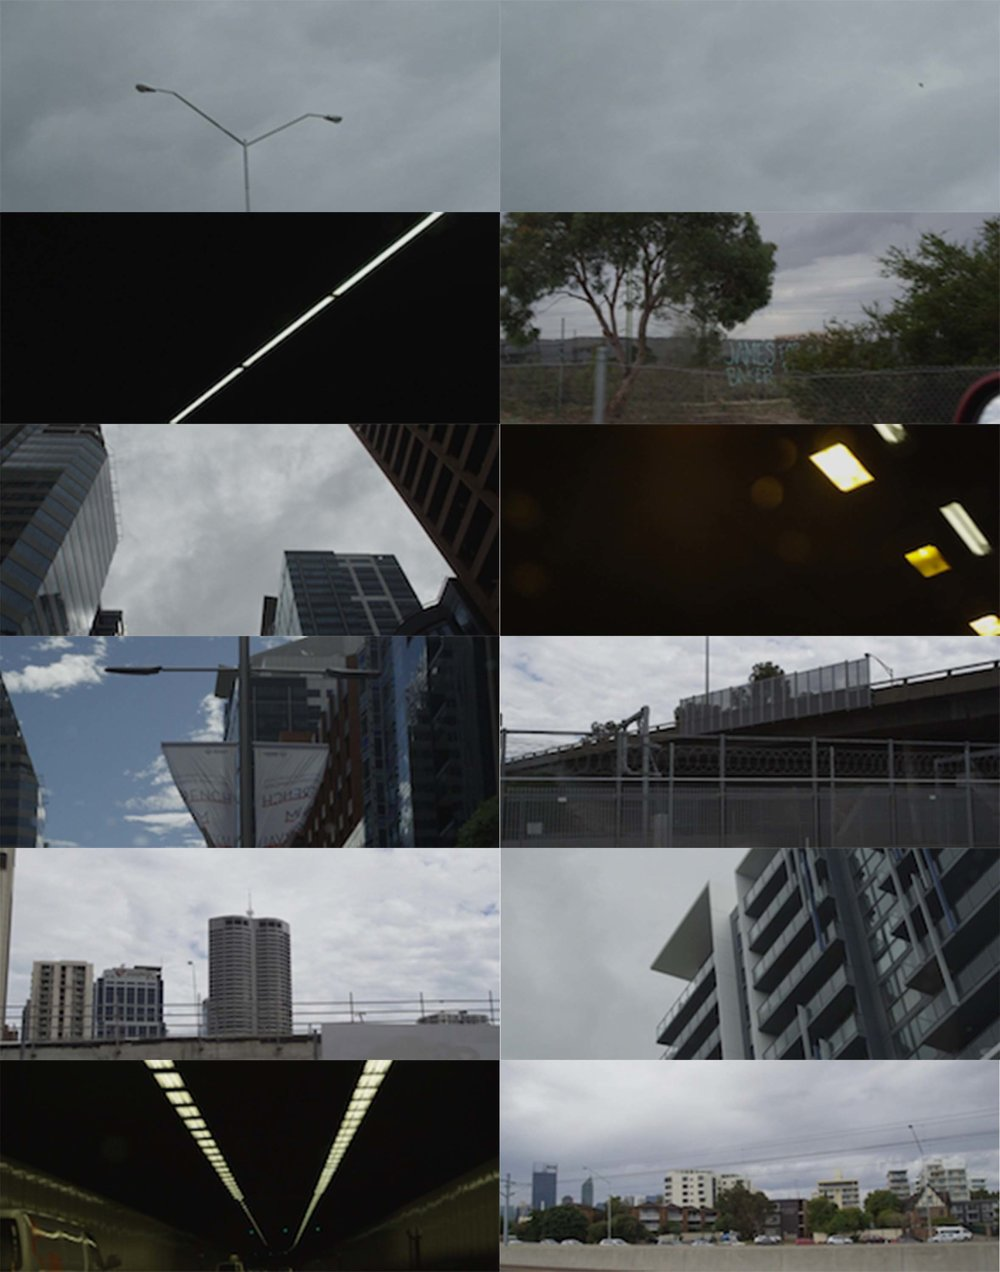 I bunch of pre exisitng RED footage of urban structure i have on file.